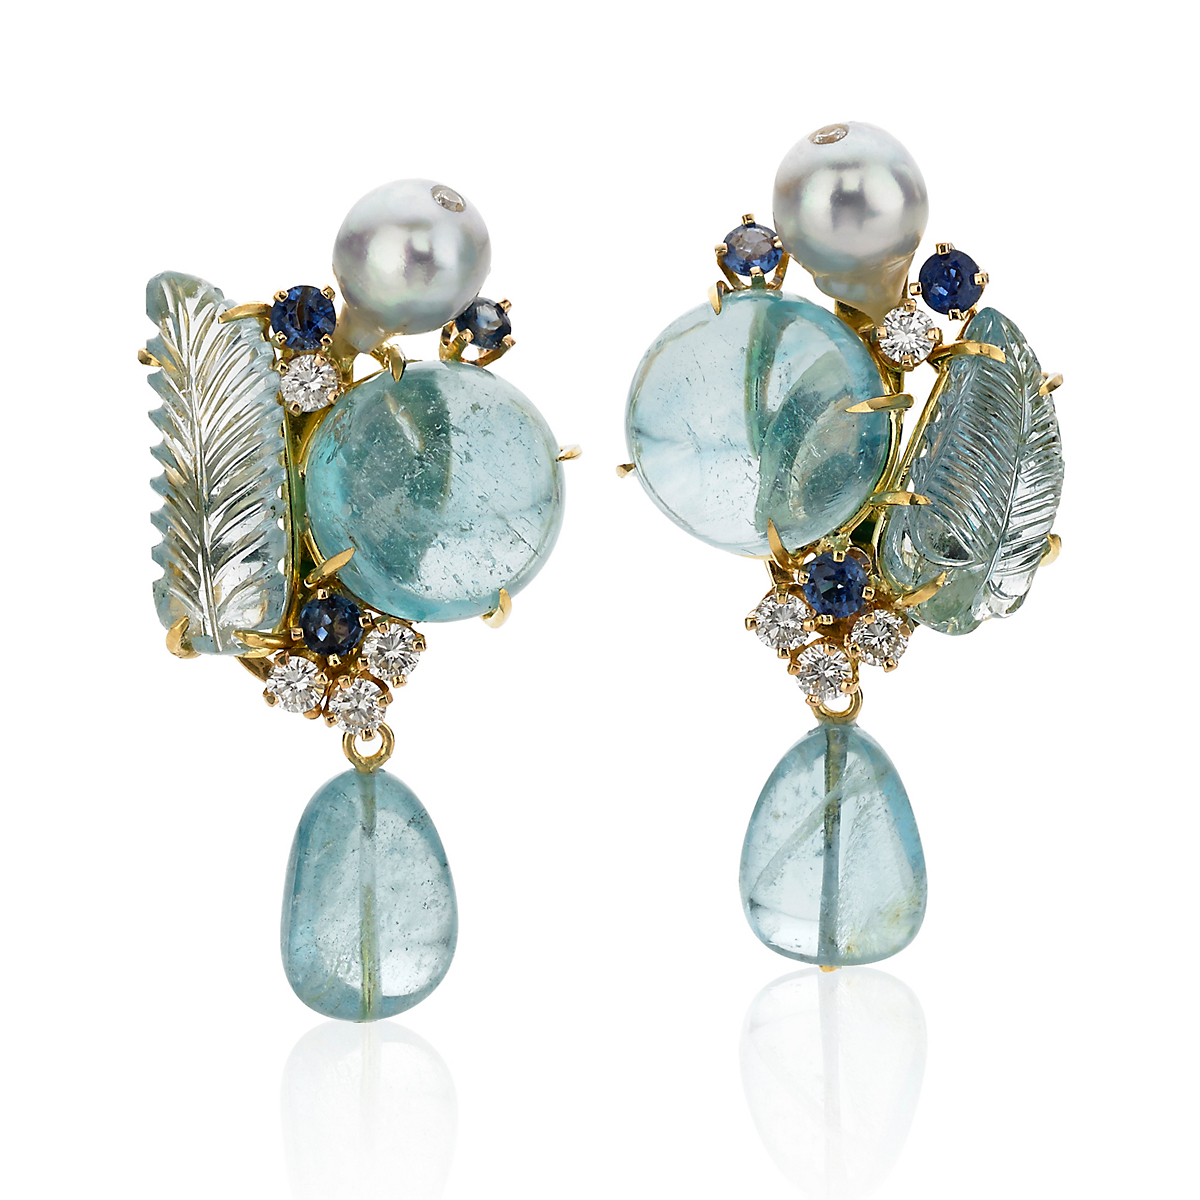 Russell Trusso Sapphire, Diamond & Aqua Drop Earrings